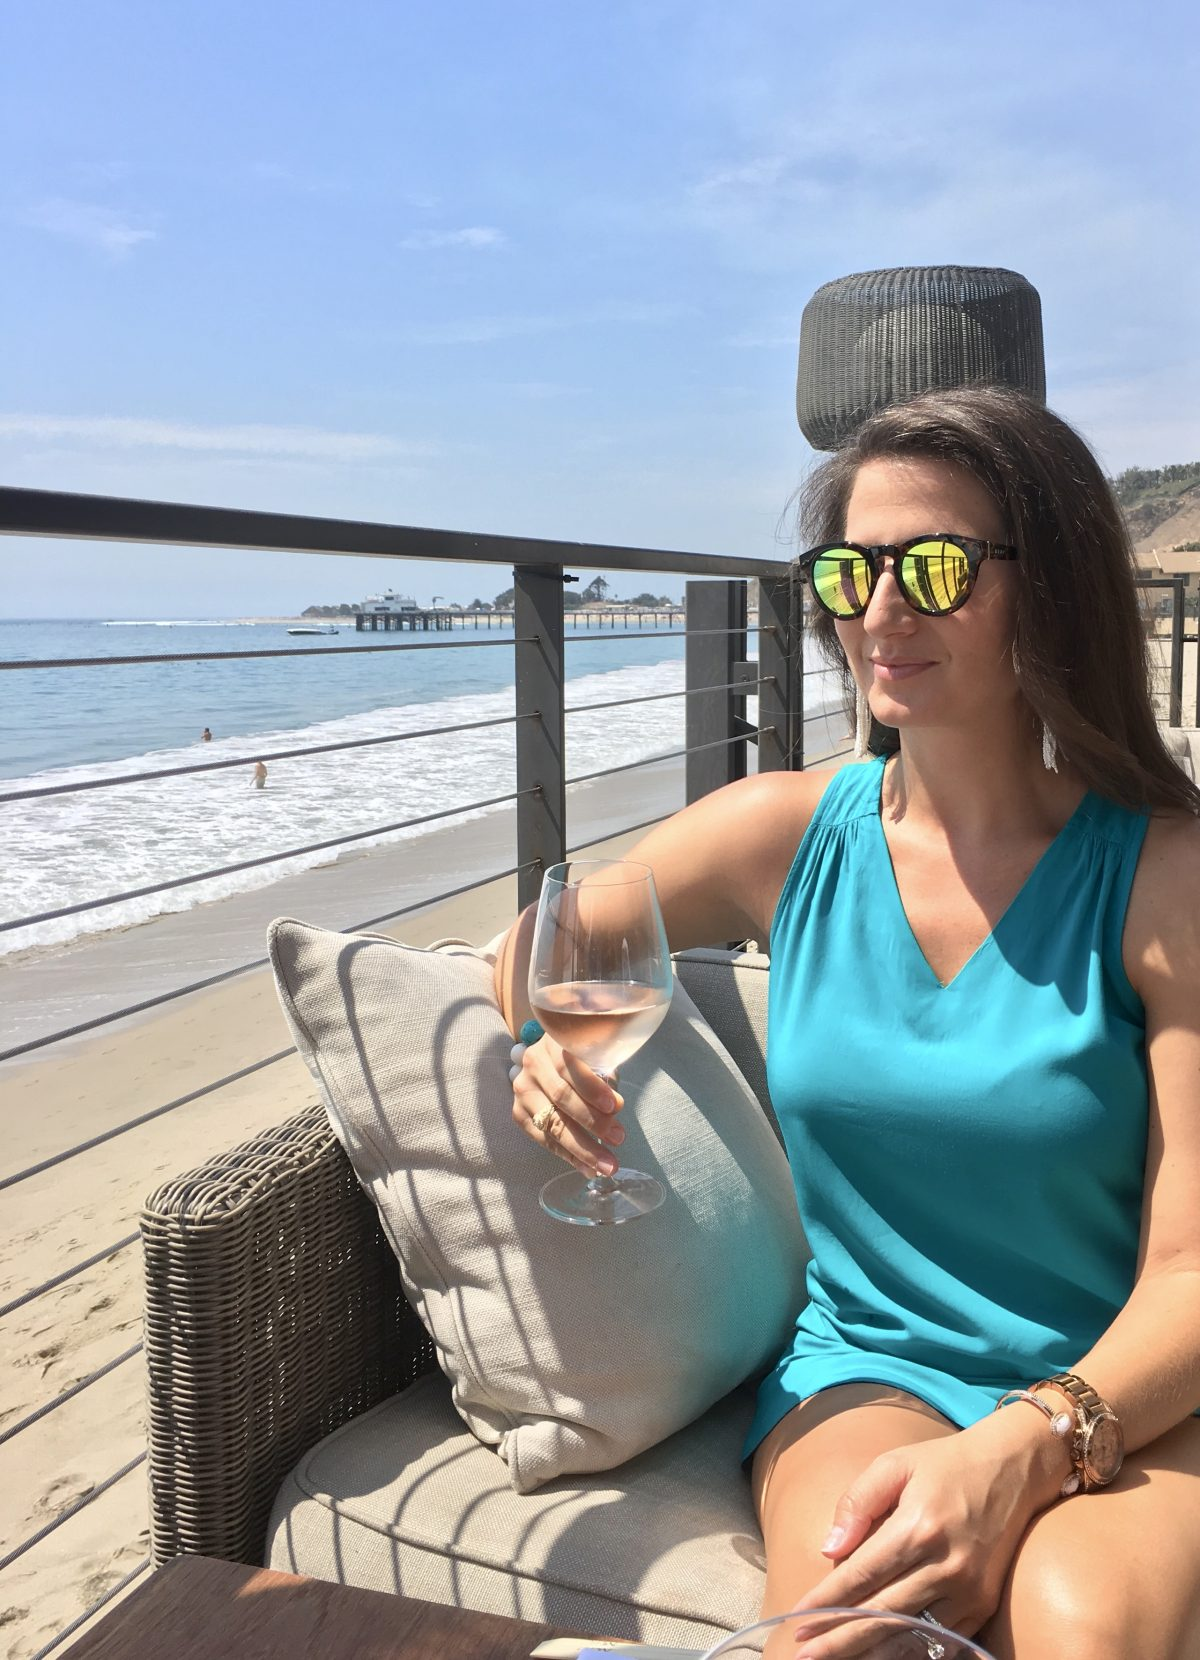 Erin Cathedrals and Cafes blog drinking rosé wine at Nobu restaurant, Malibu, California